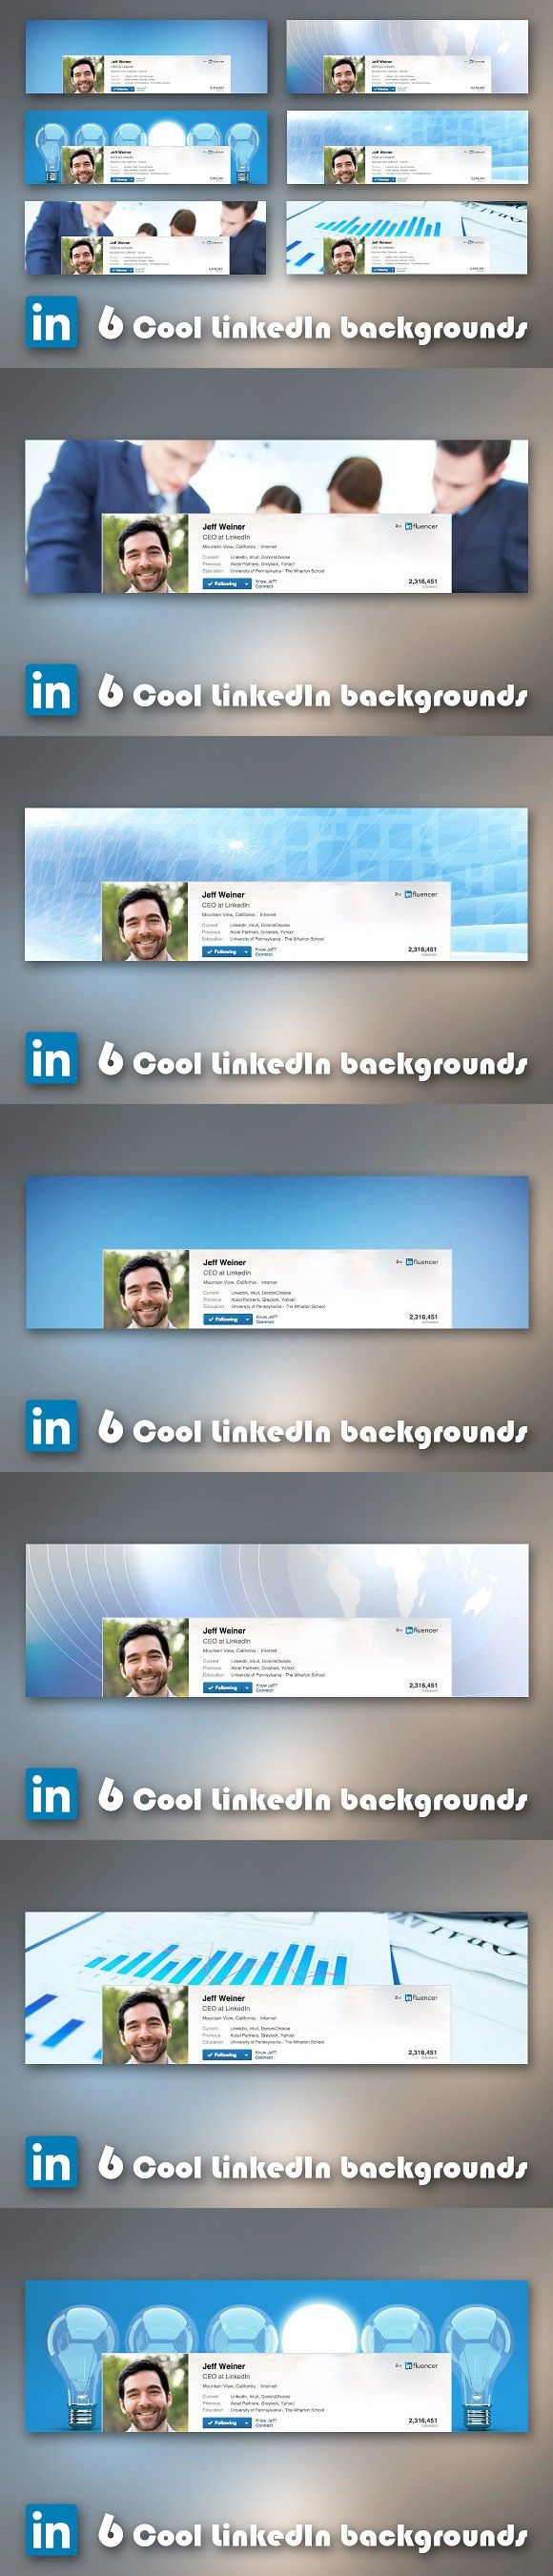 6 Cool business LinkedIn backgrounds. Social Media Templates